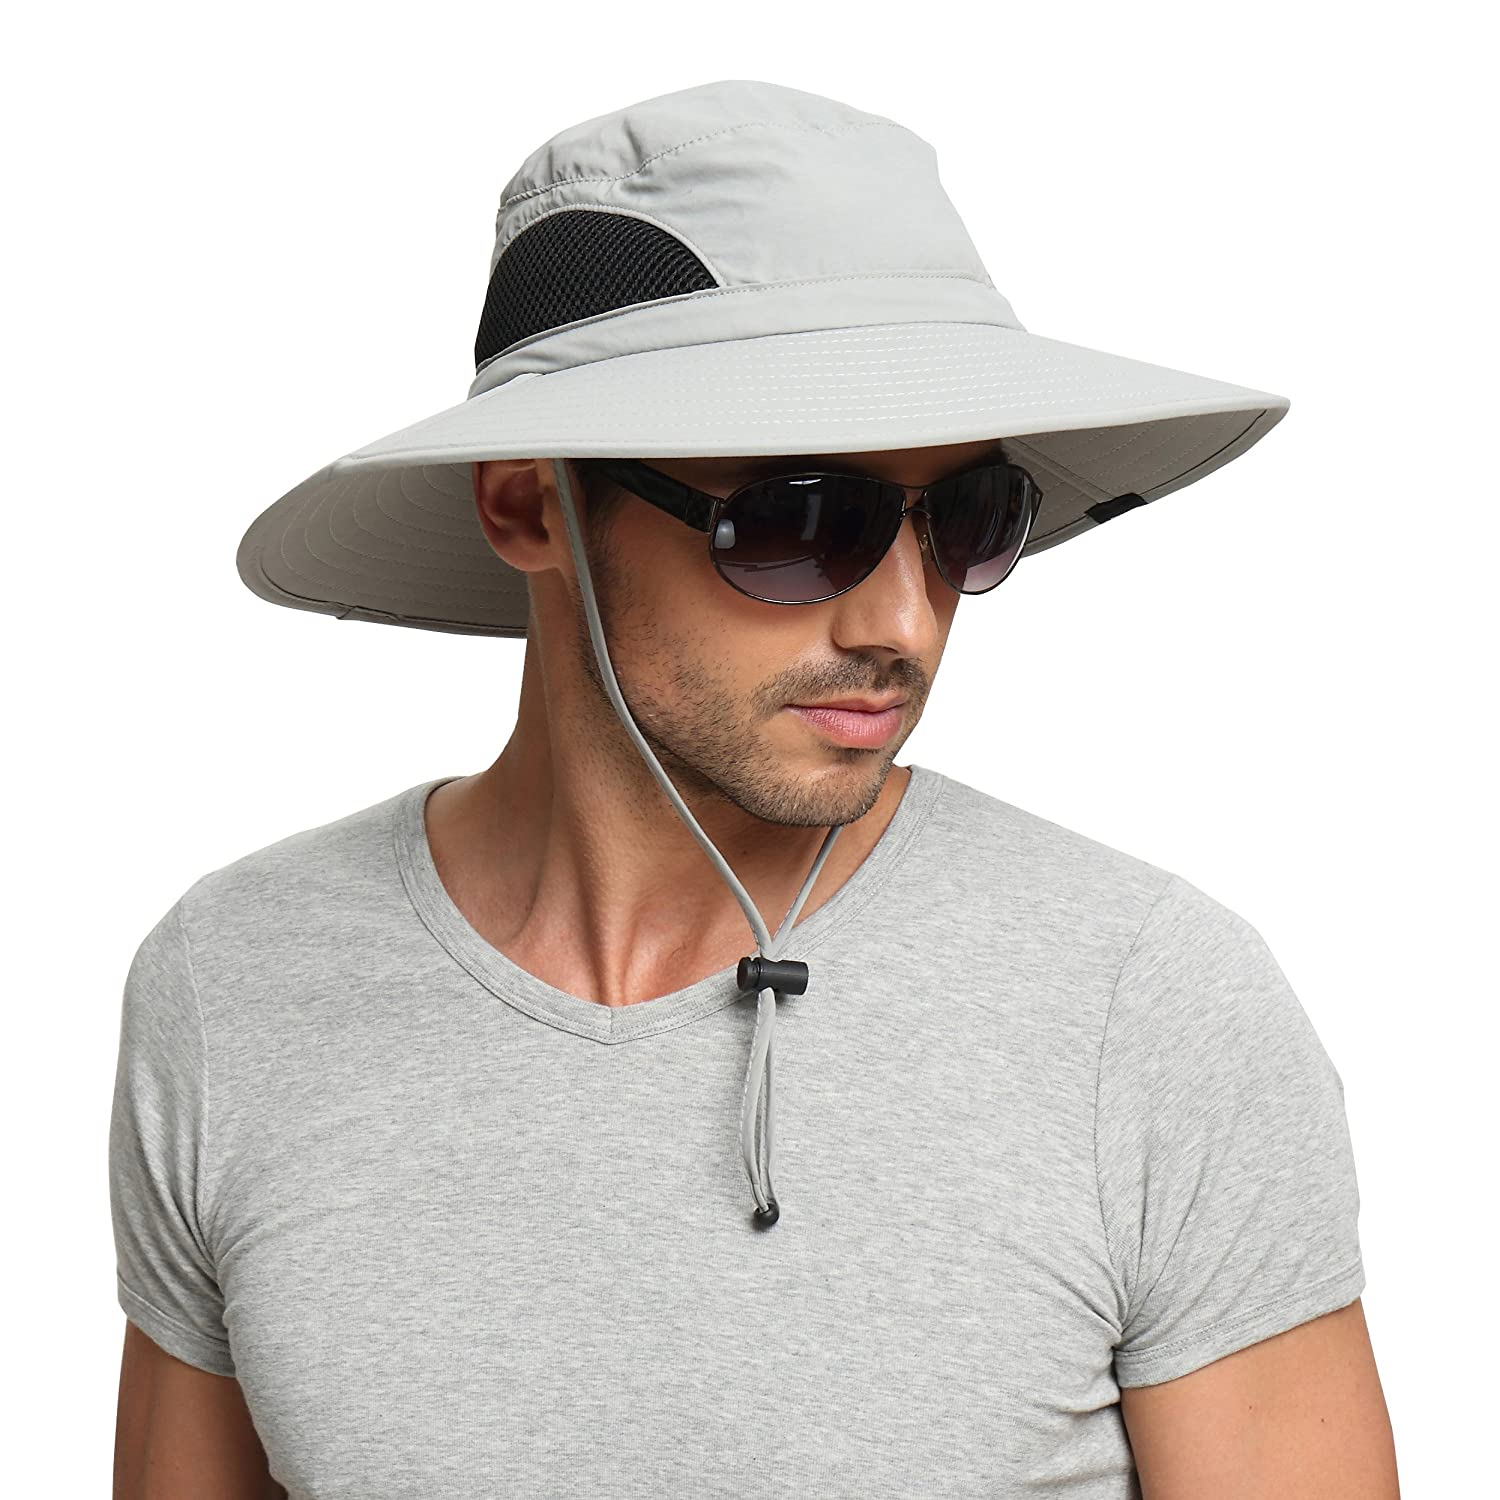 EINSKEY Sonnenhut Herren Damen UV Schutz Safari Hut Wanderhut Faltbar Gartenhut Boonie Fischerhut Wasserdicht Outdoor Buschhut Hiking Bucket Hat Wide Brim Hat